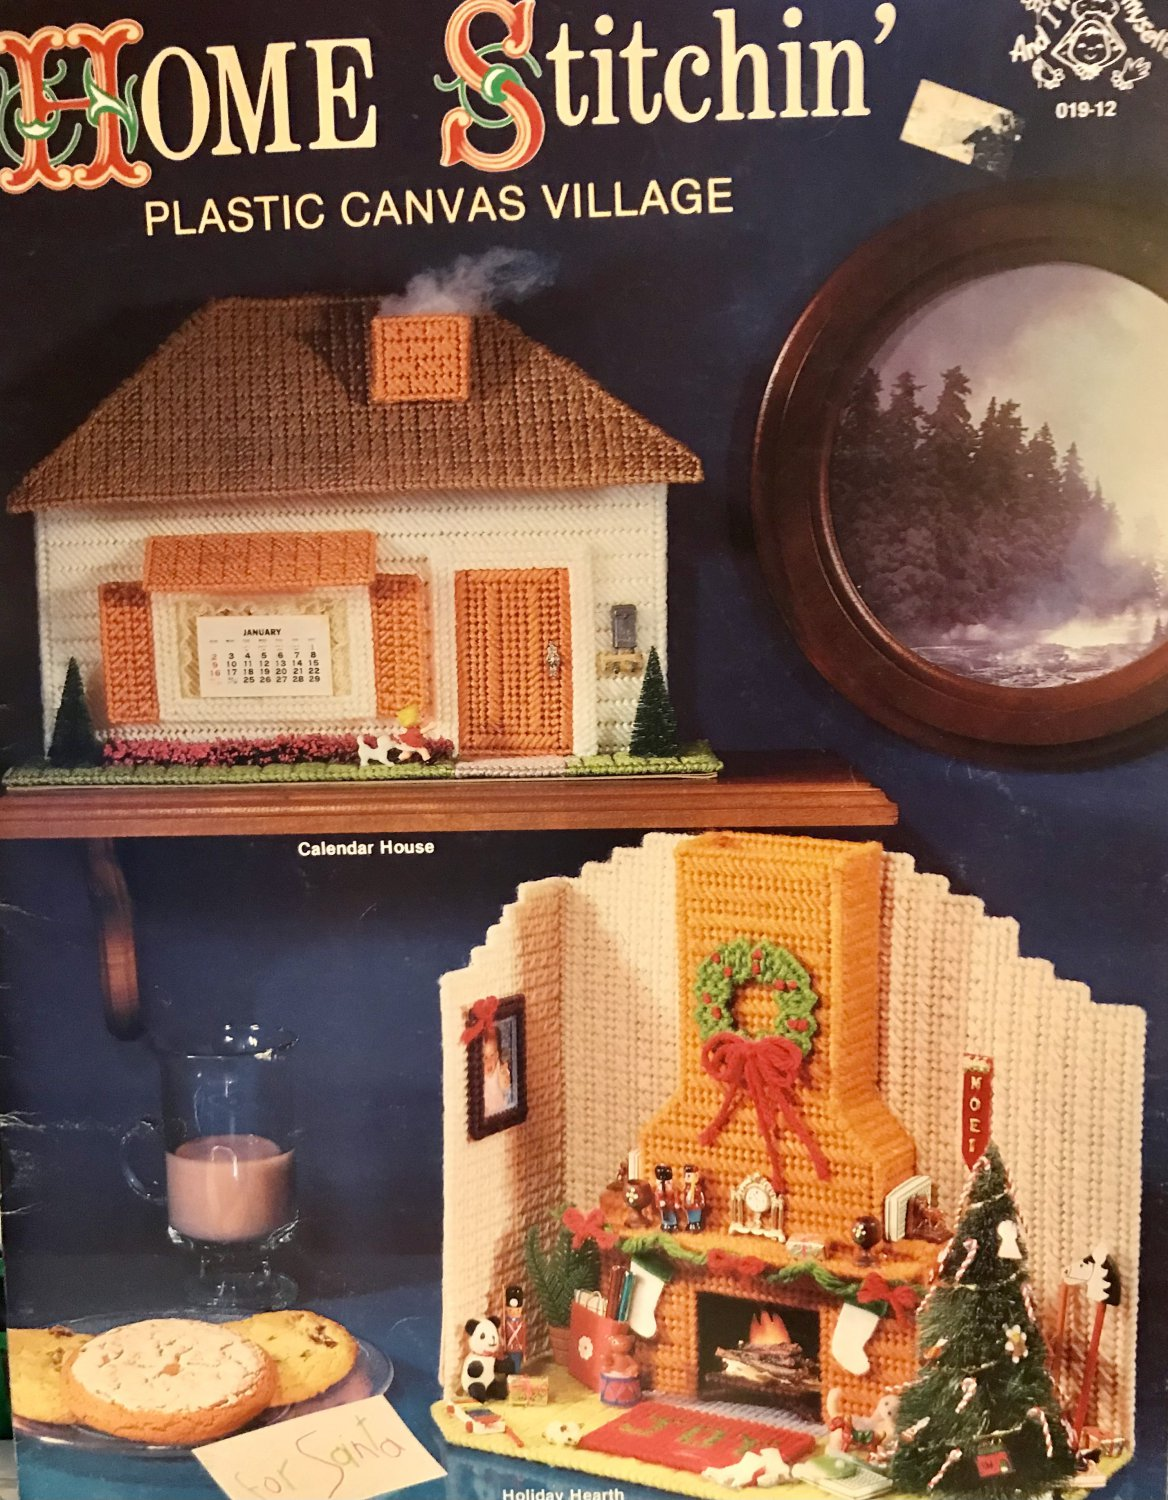 Plastic Canvas Village Home Stitchin' Holiday Crafts Fire House Country Store Barn Mangelsens